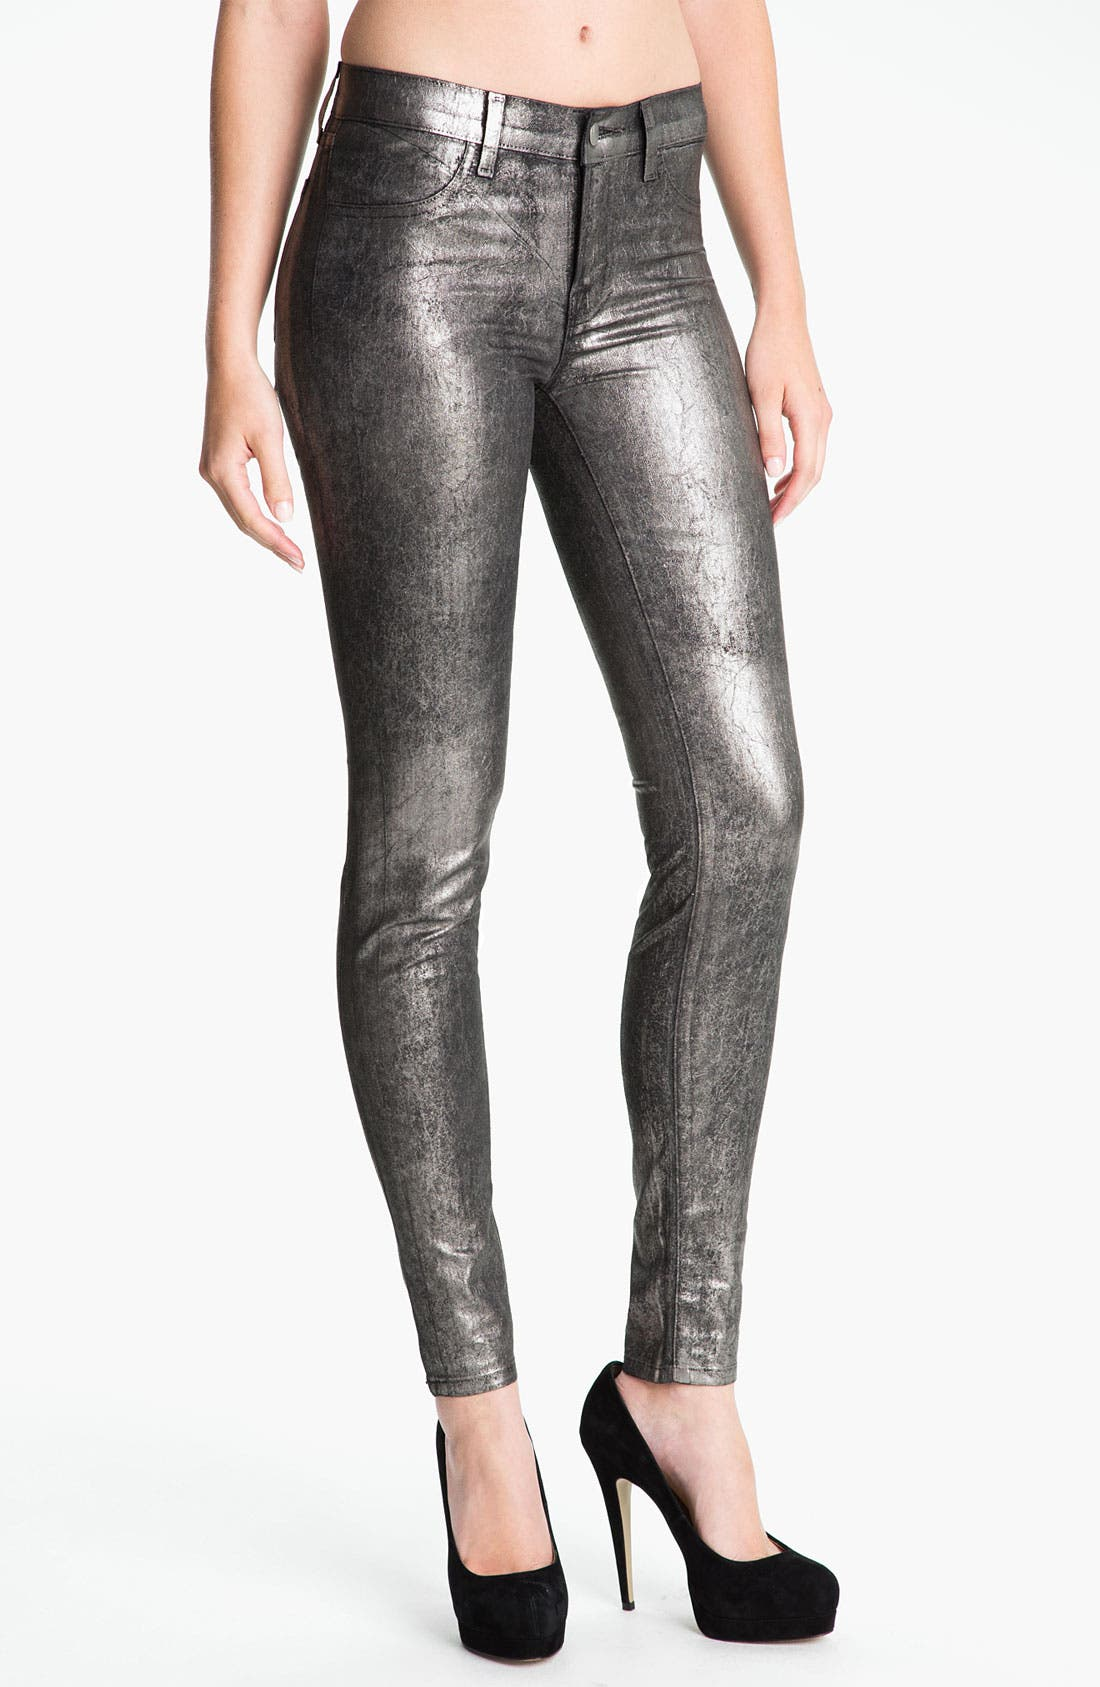 Alternate Image 1 Selected - J Brand Metallic Stretch Denim Leggings